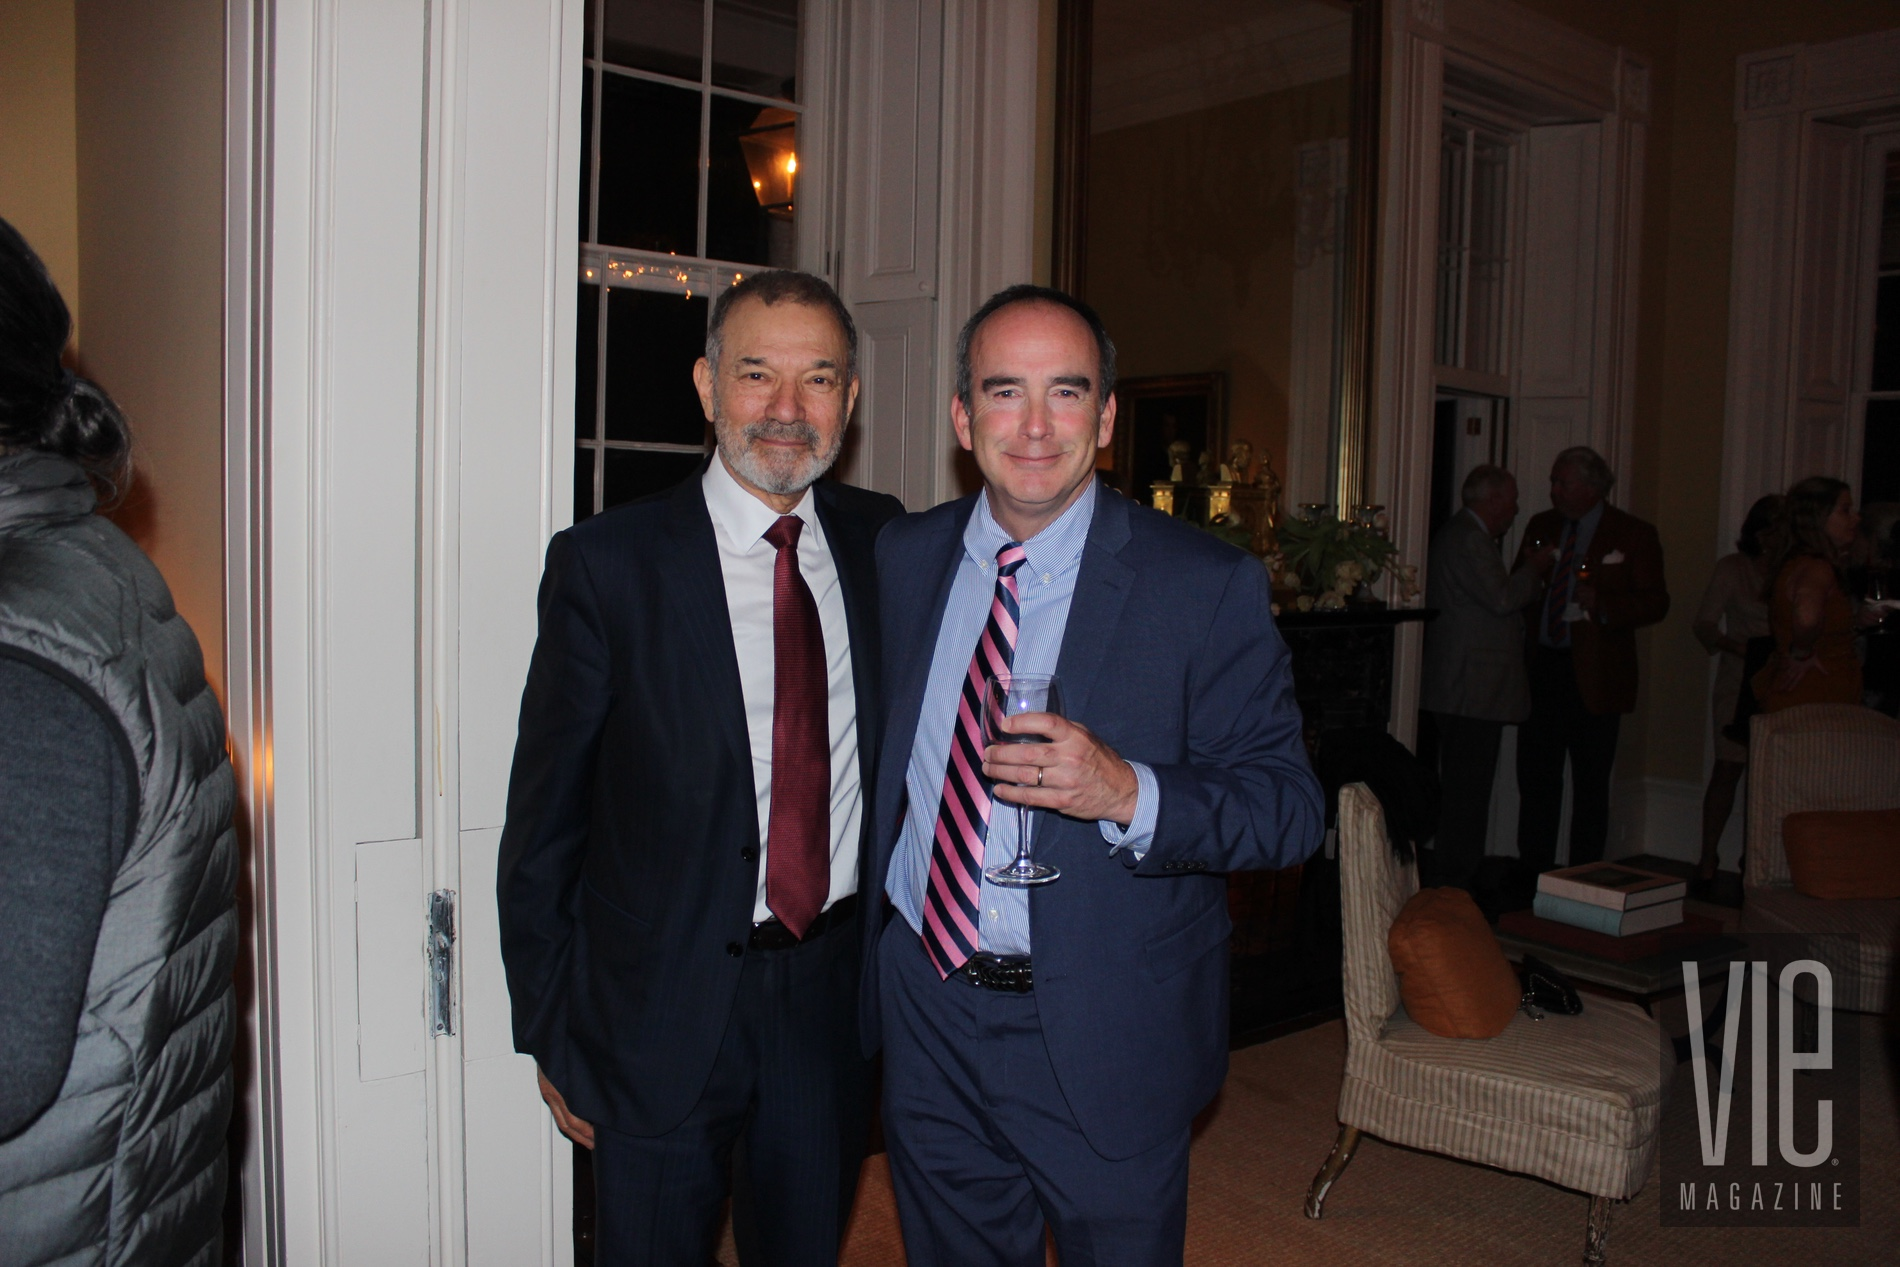 Author Stephen Greenblatt with Tom Duffey at Charleston to Charleston Literary Festival 2018 VIE Magazine